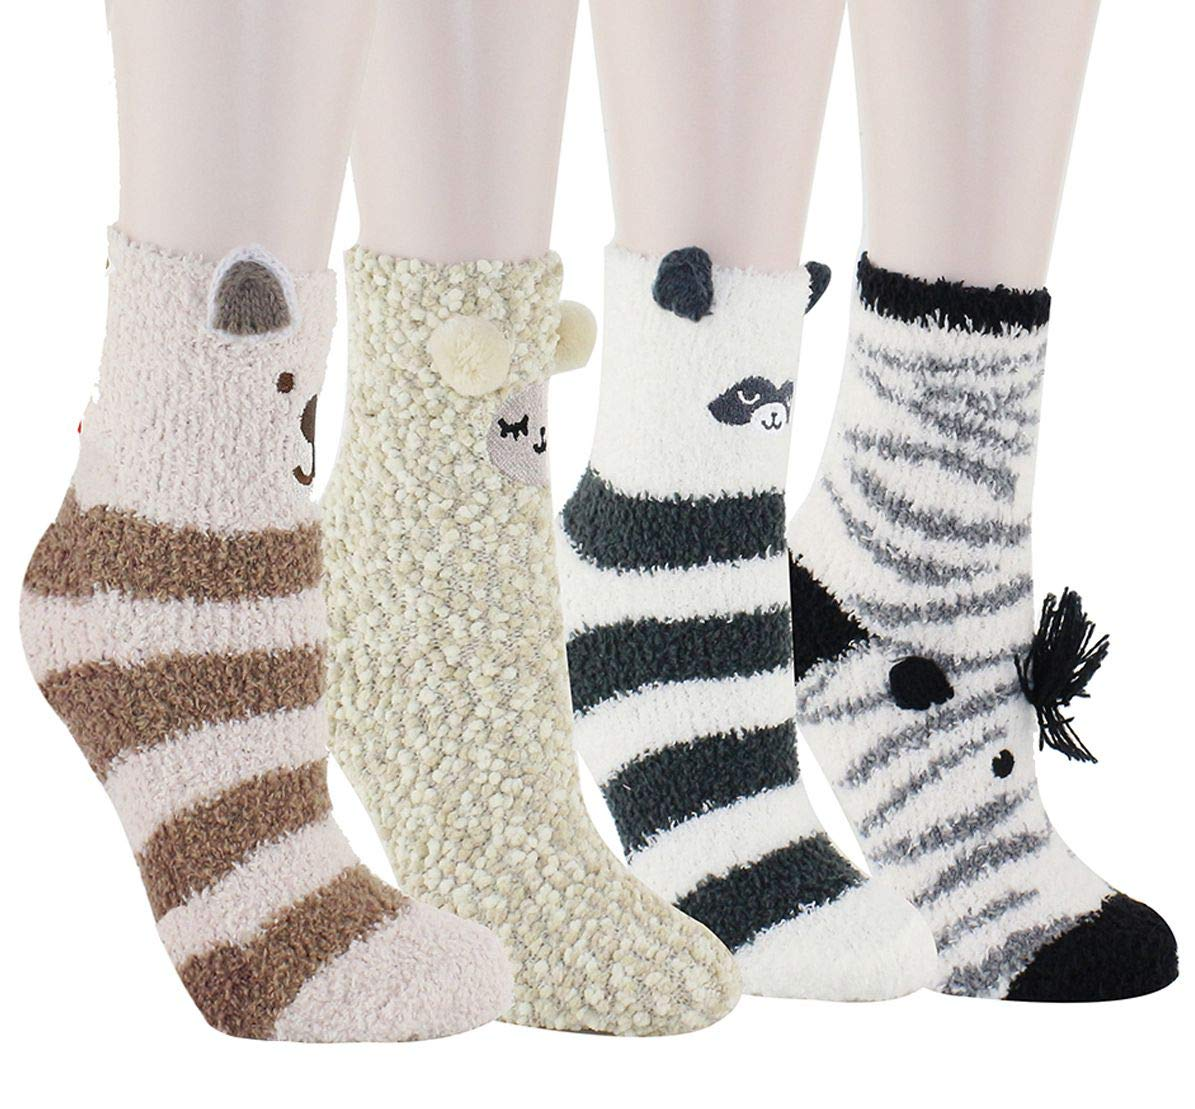 Happypop Women Girls Slipper Socks Cute Animals Fuzzy Crew Winter Warm Socks Thermal Socks 4 Pack